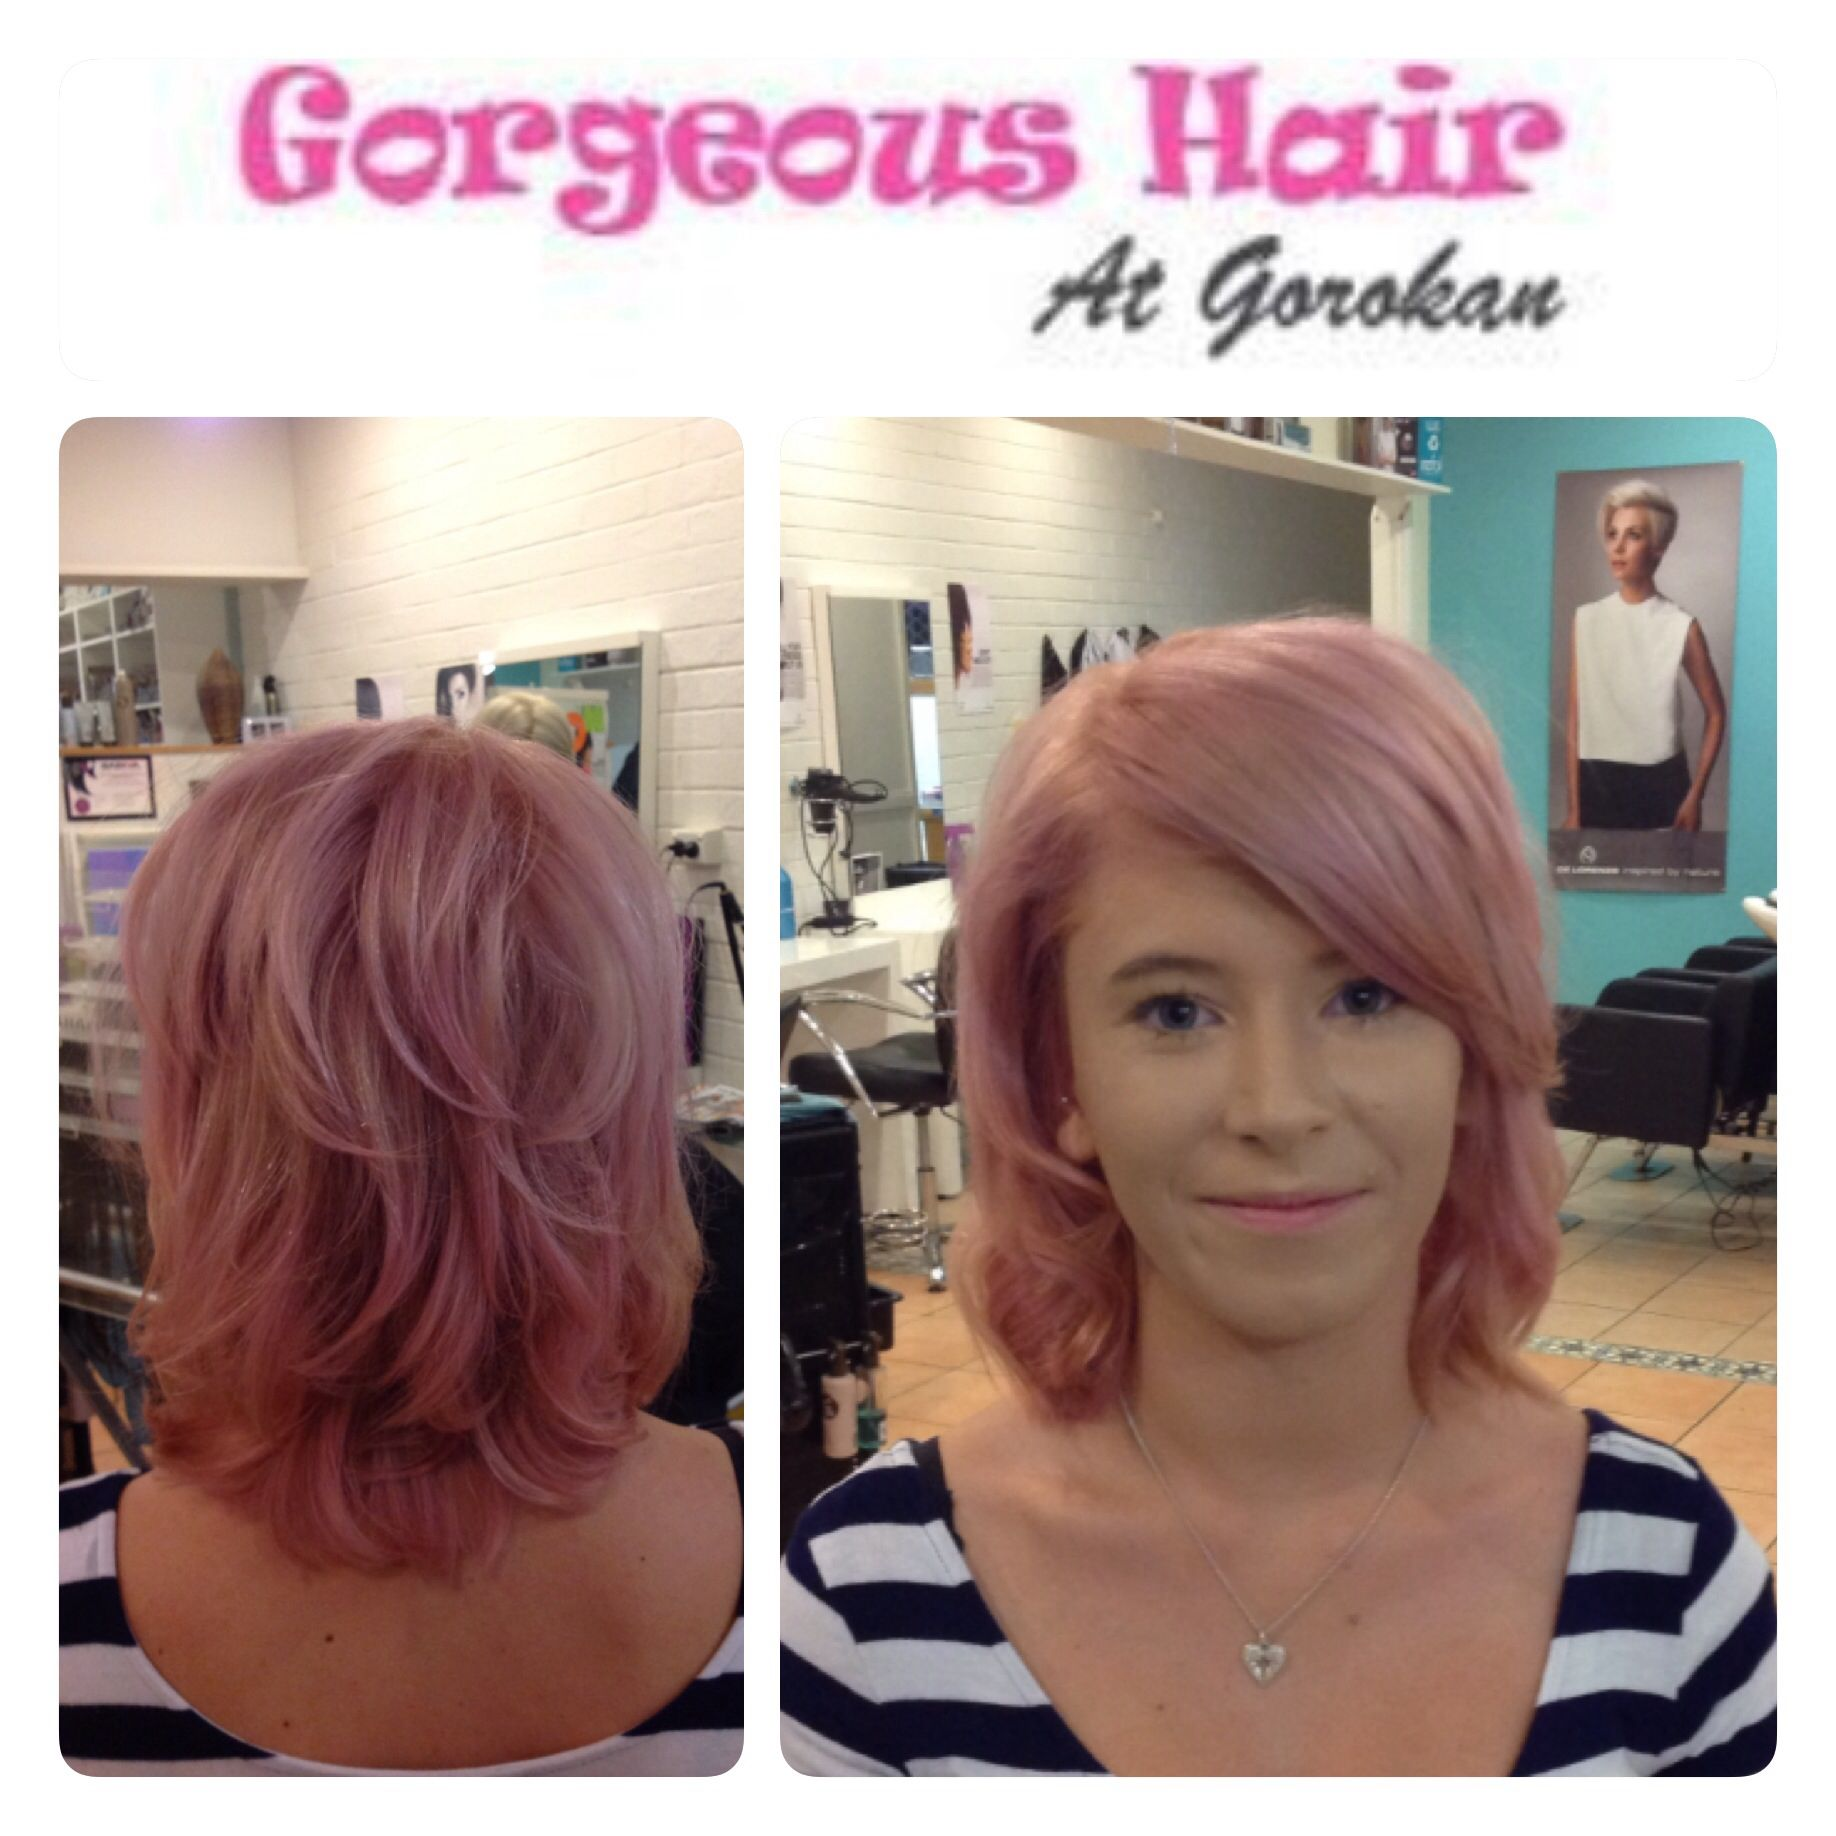 #pinkhair #violethair #pasteltones  hair by Danielle at gorgeous hair @ Gorokan Www.gorgeoushairgorokan.com.au